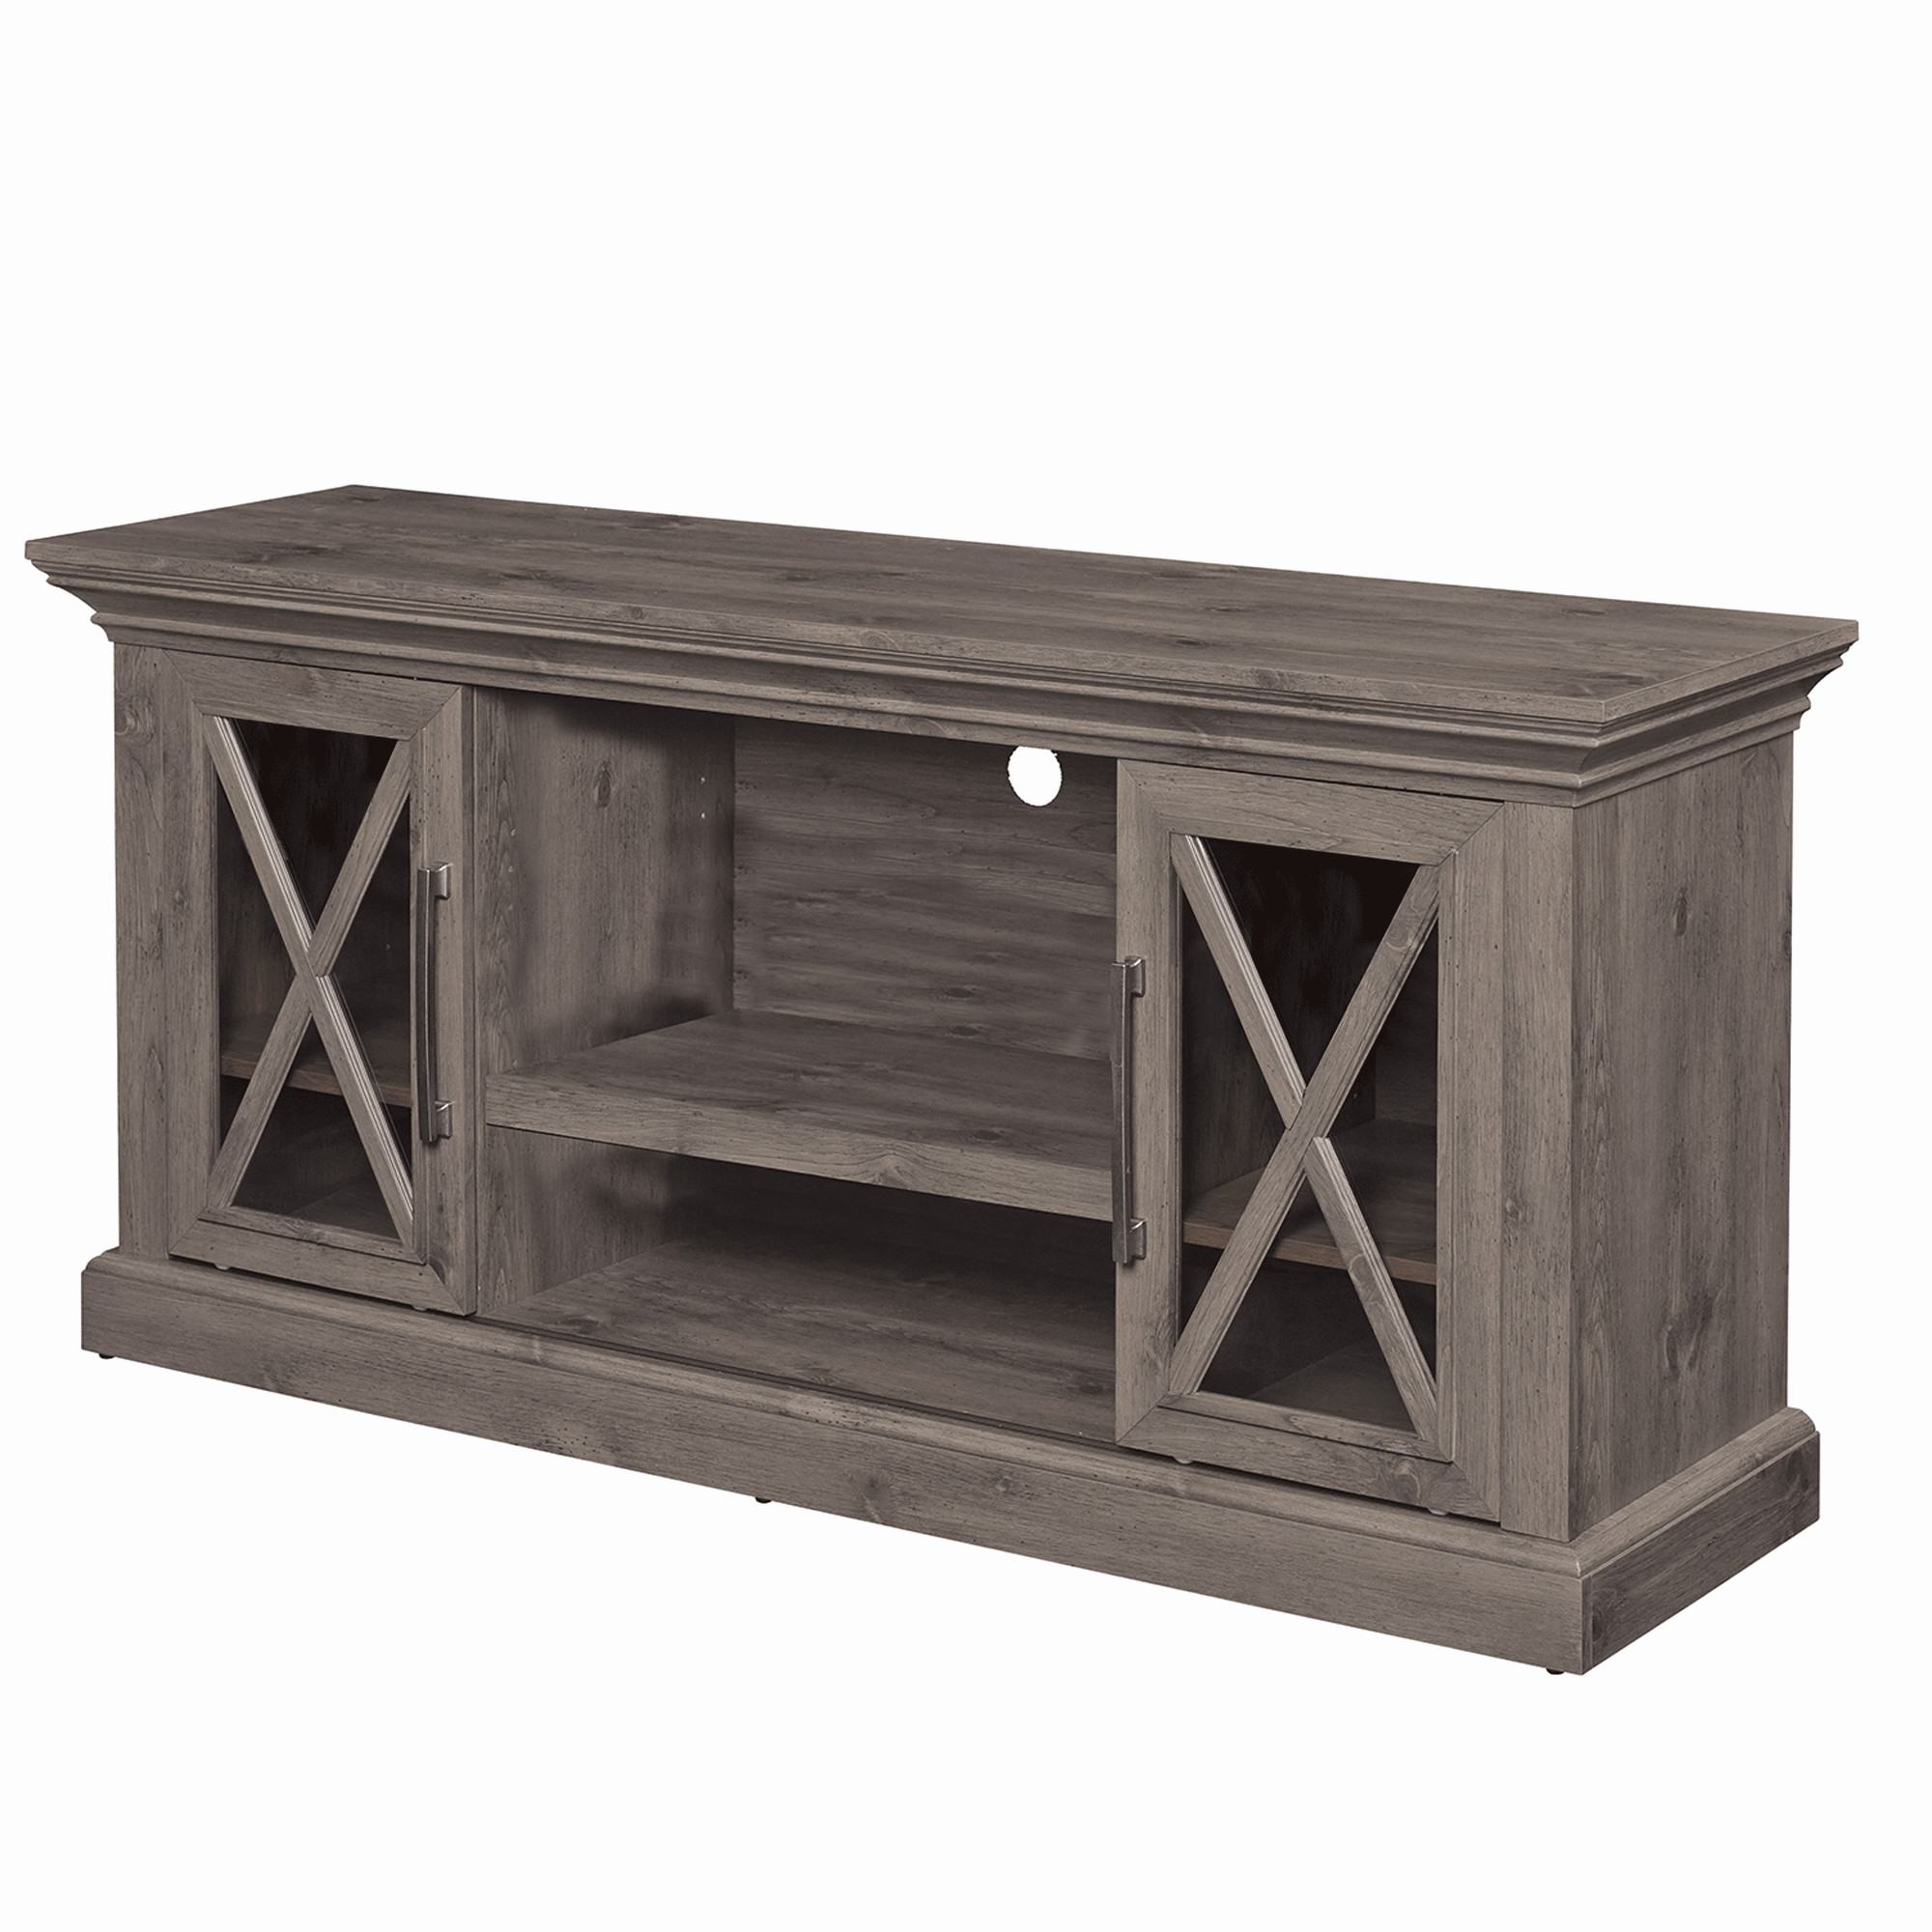 13 Stunning 65 Inch Tv Stand For Your New Living Room For Jaxon 65 Inch Tv Stands (View 1 of 20)